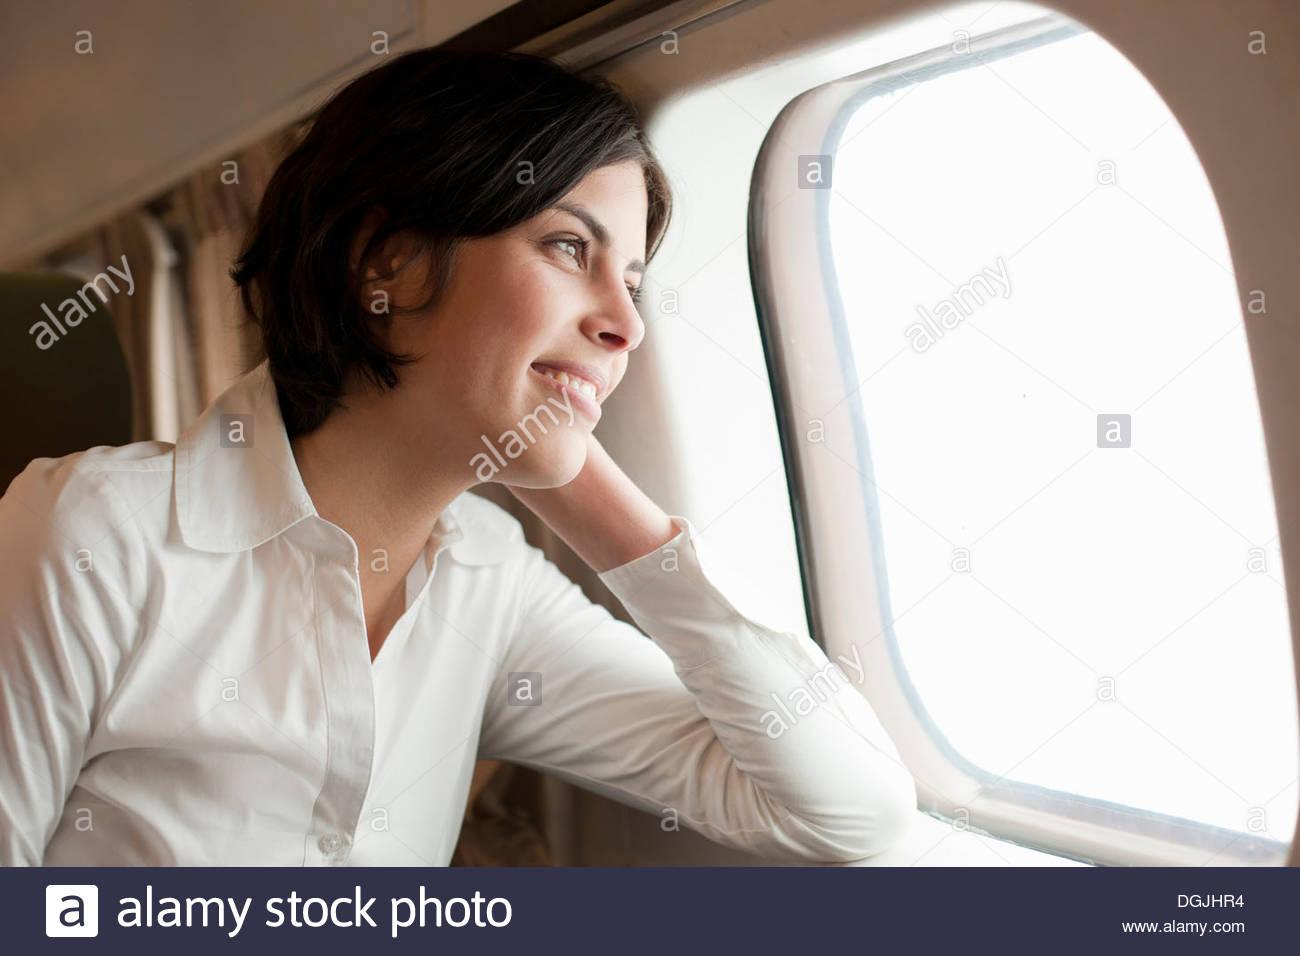 Candid portrait of young female looking out of aeroplane window - Stock Image